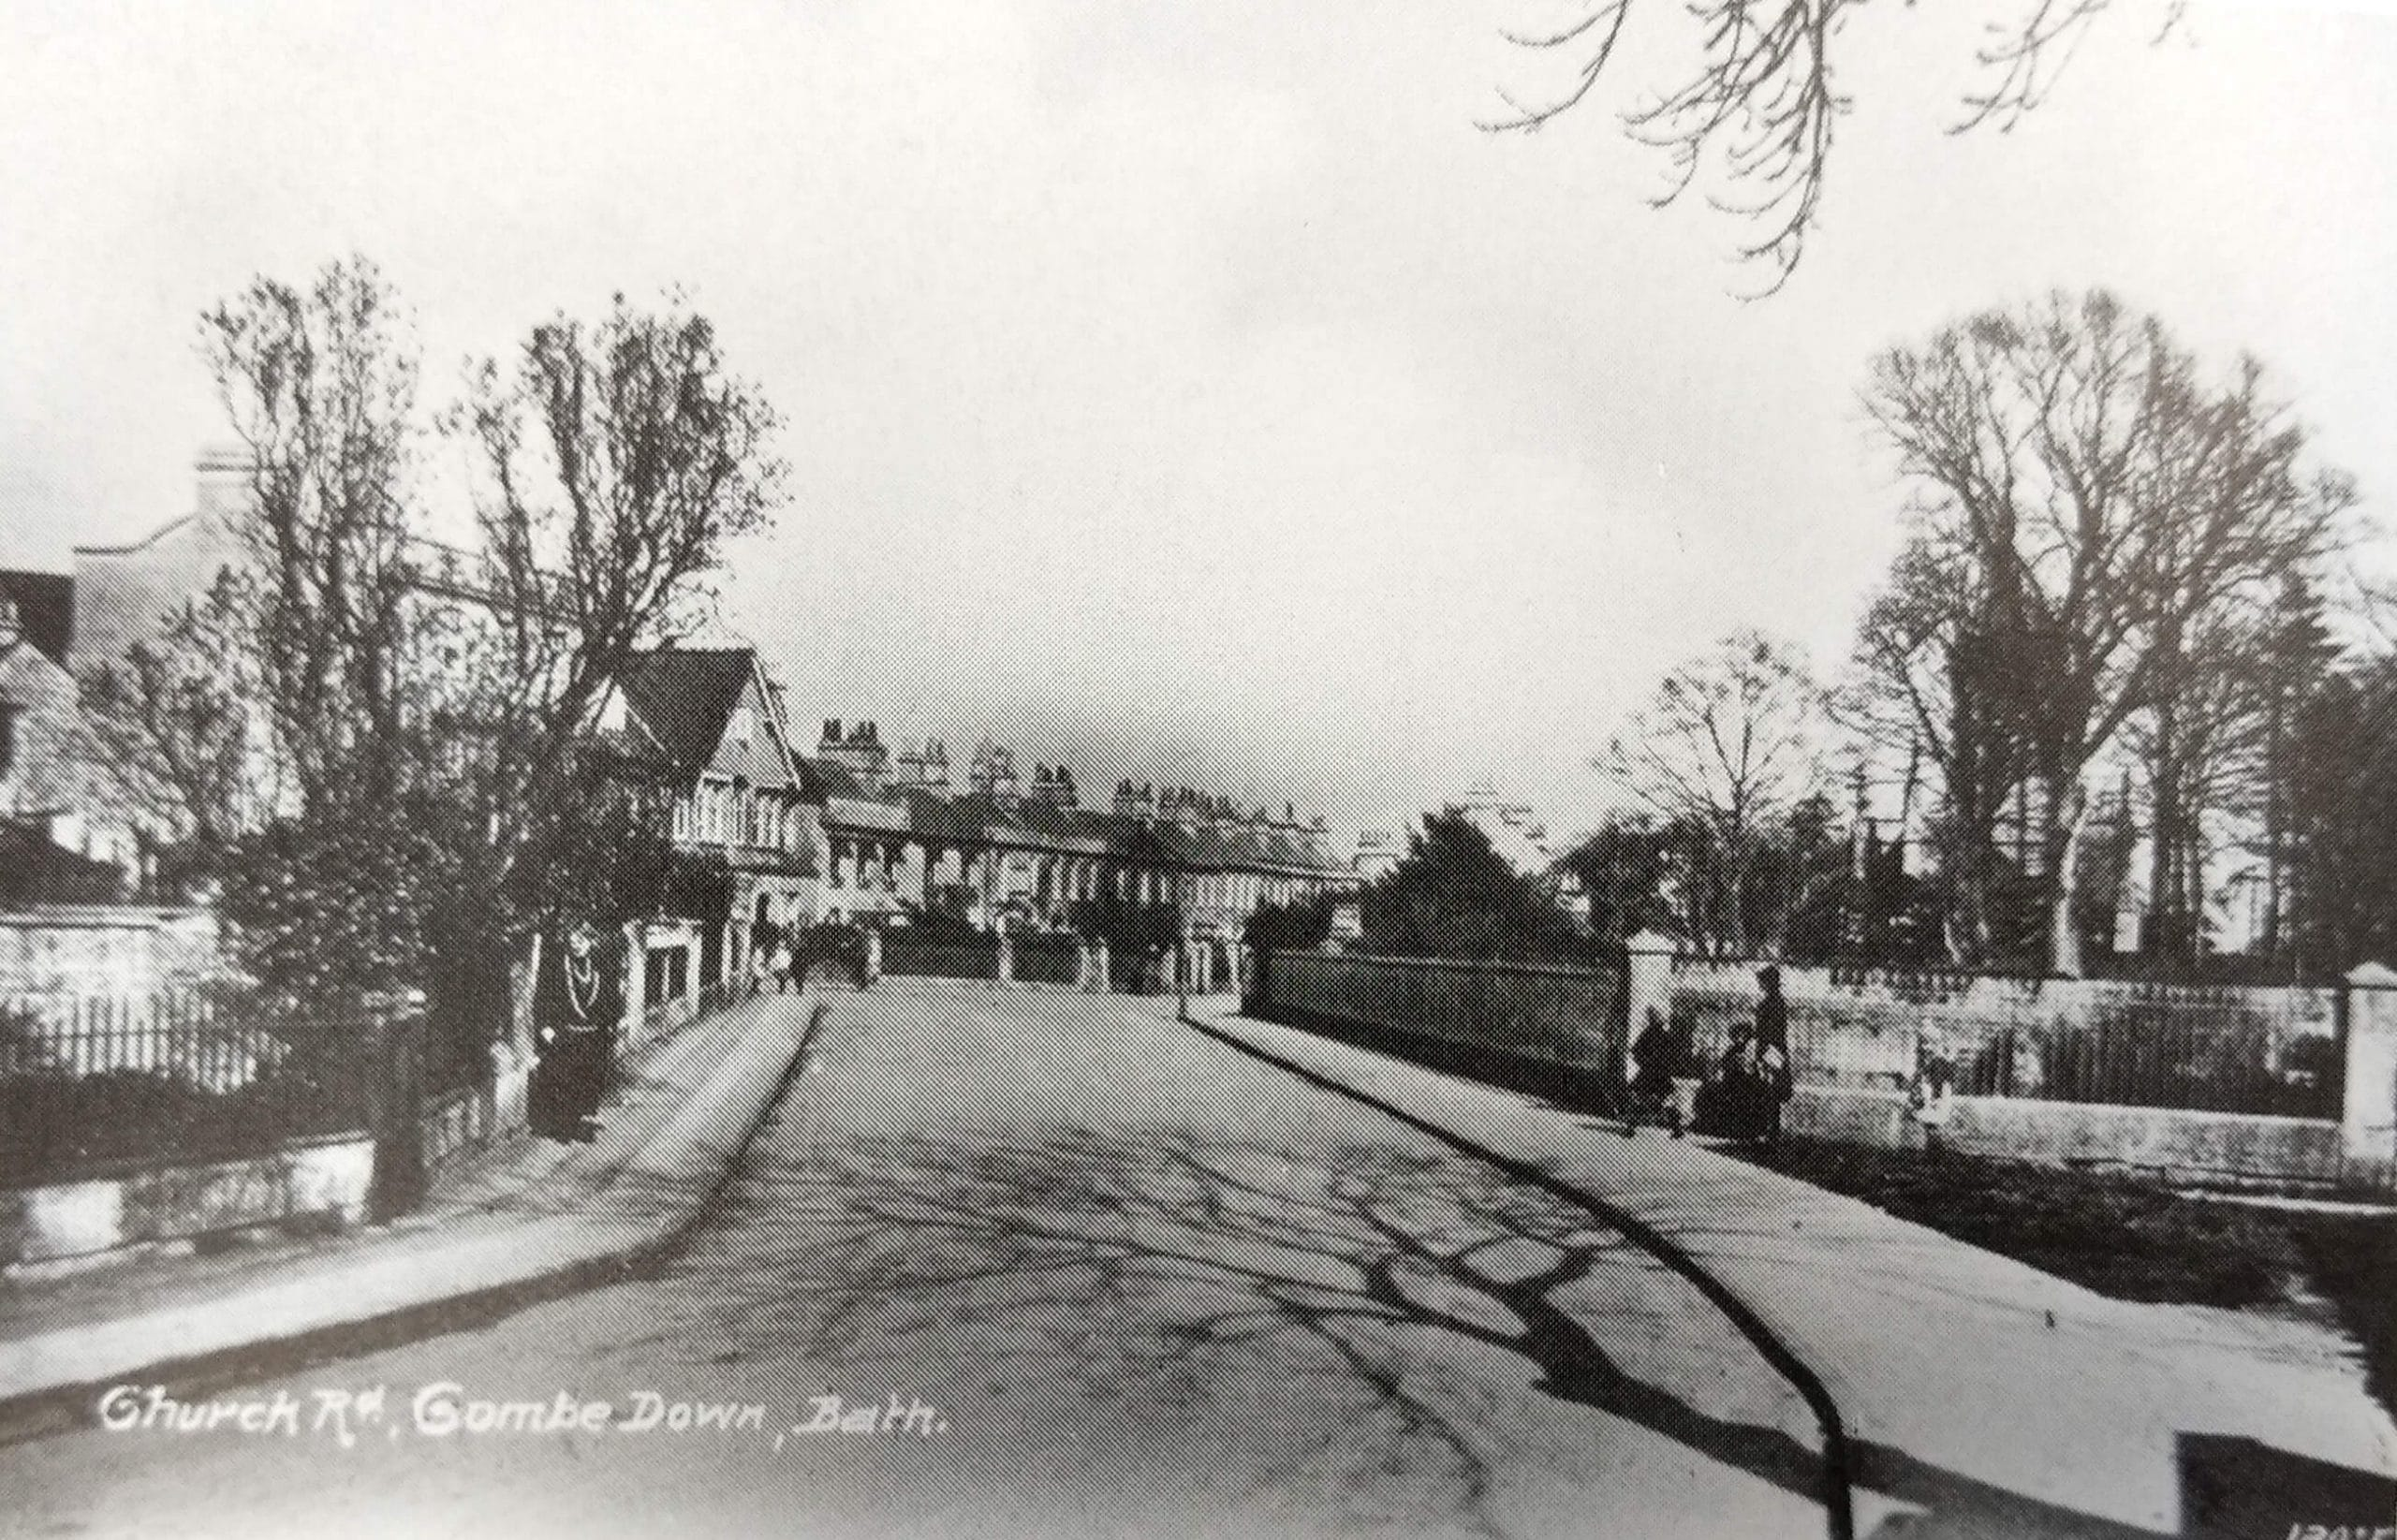 Church Road, Combe Down about 1912